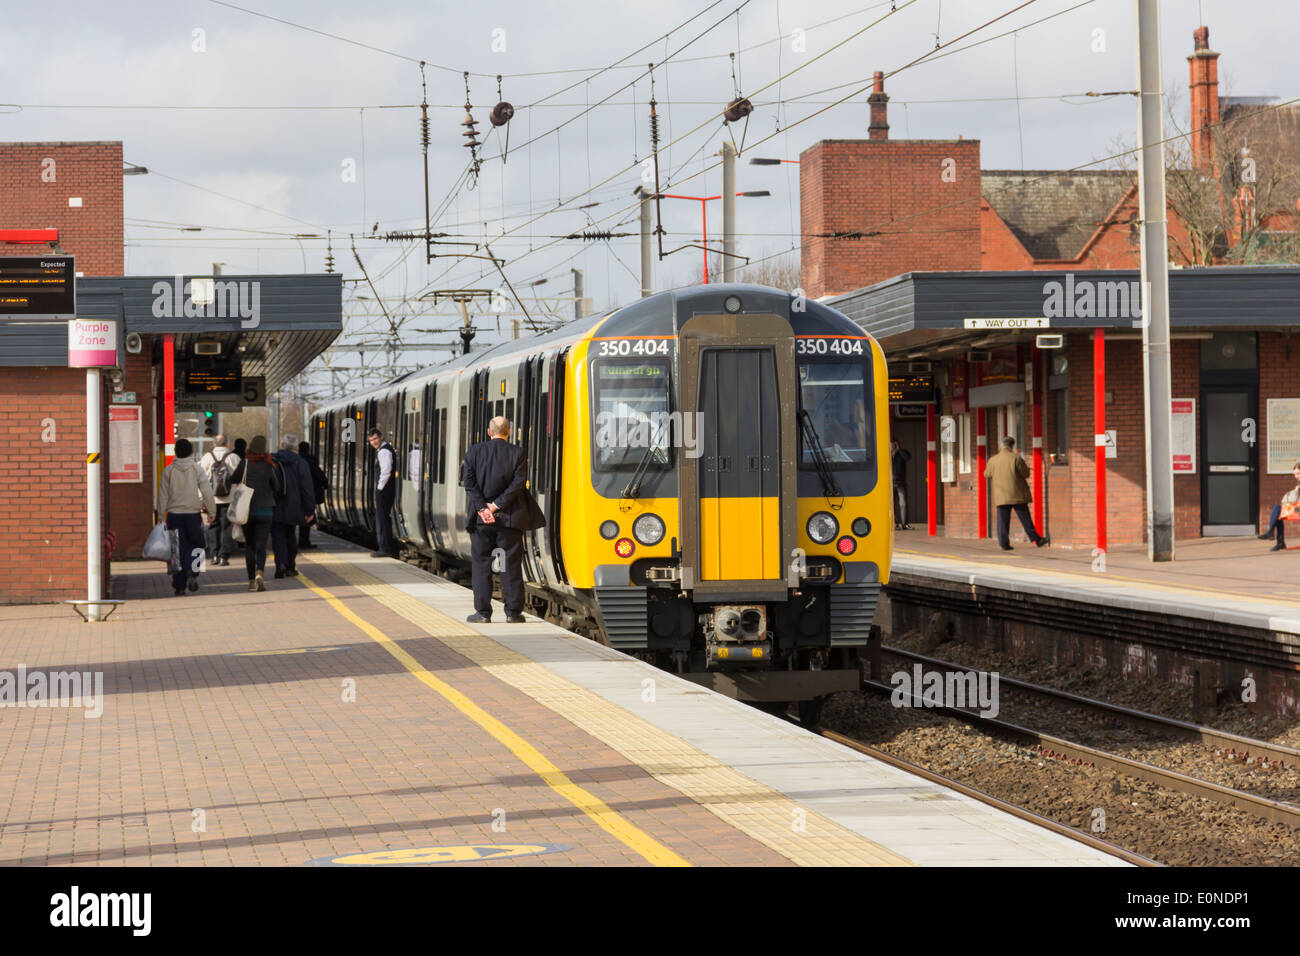 Manchester to Glasgow TransPennine Express Class 350 Desiro EMU train standing at Wigan North Western Station. - Stock Image